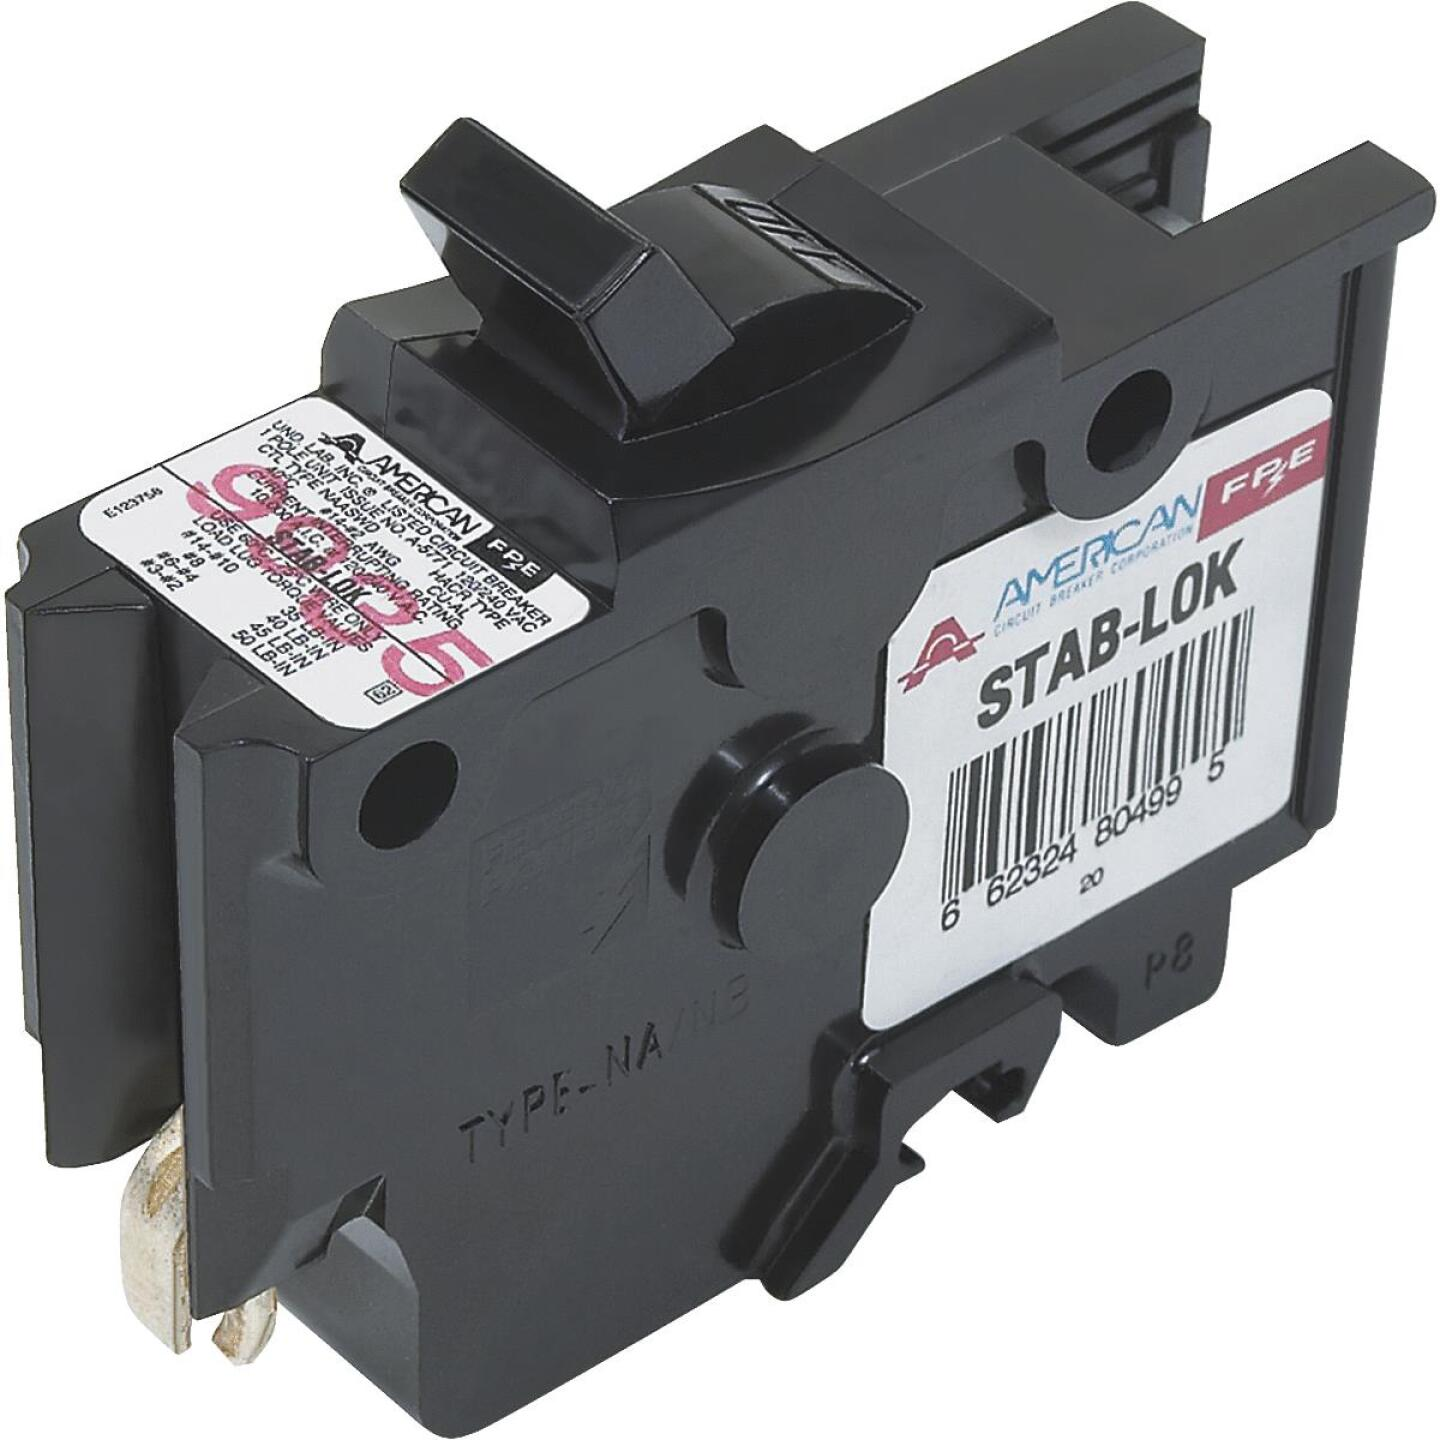 Connecticut Electric 50A Single-Pole Standard Trip Packaged Replacement Circuit Breaker For Federal Pacific Image 1